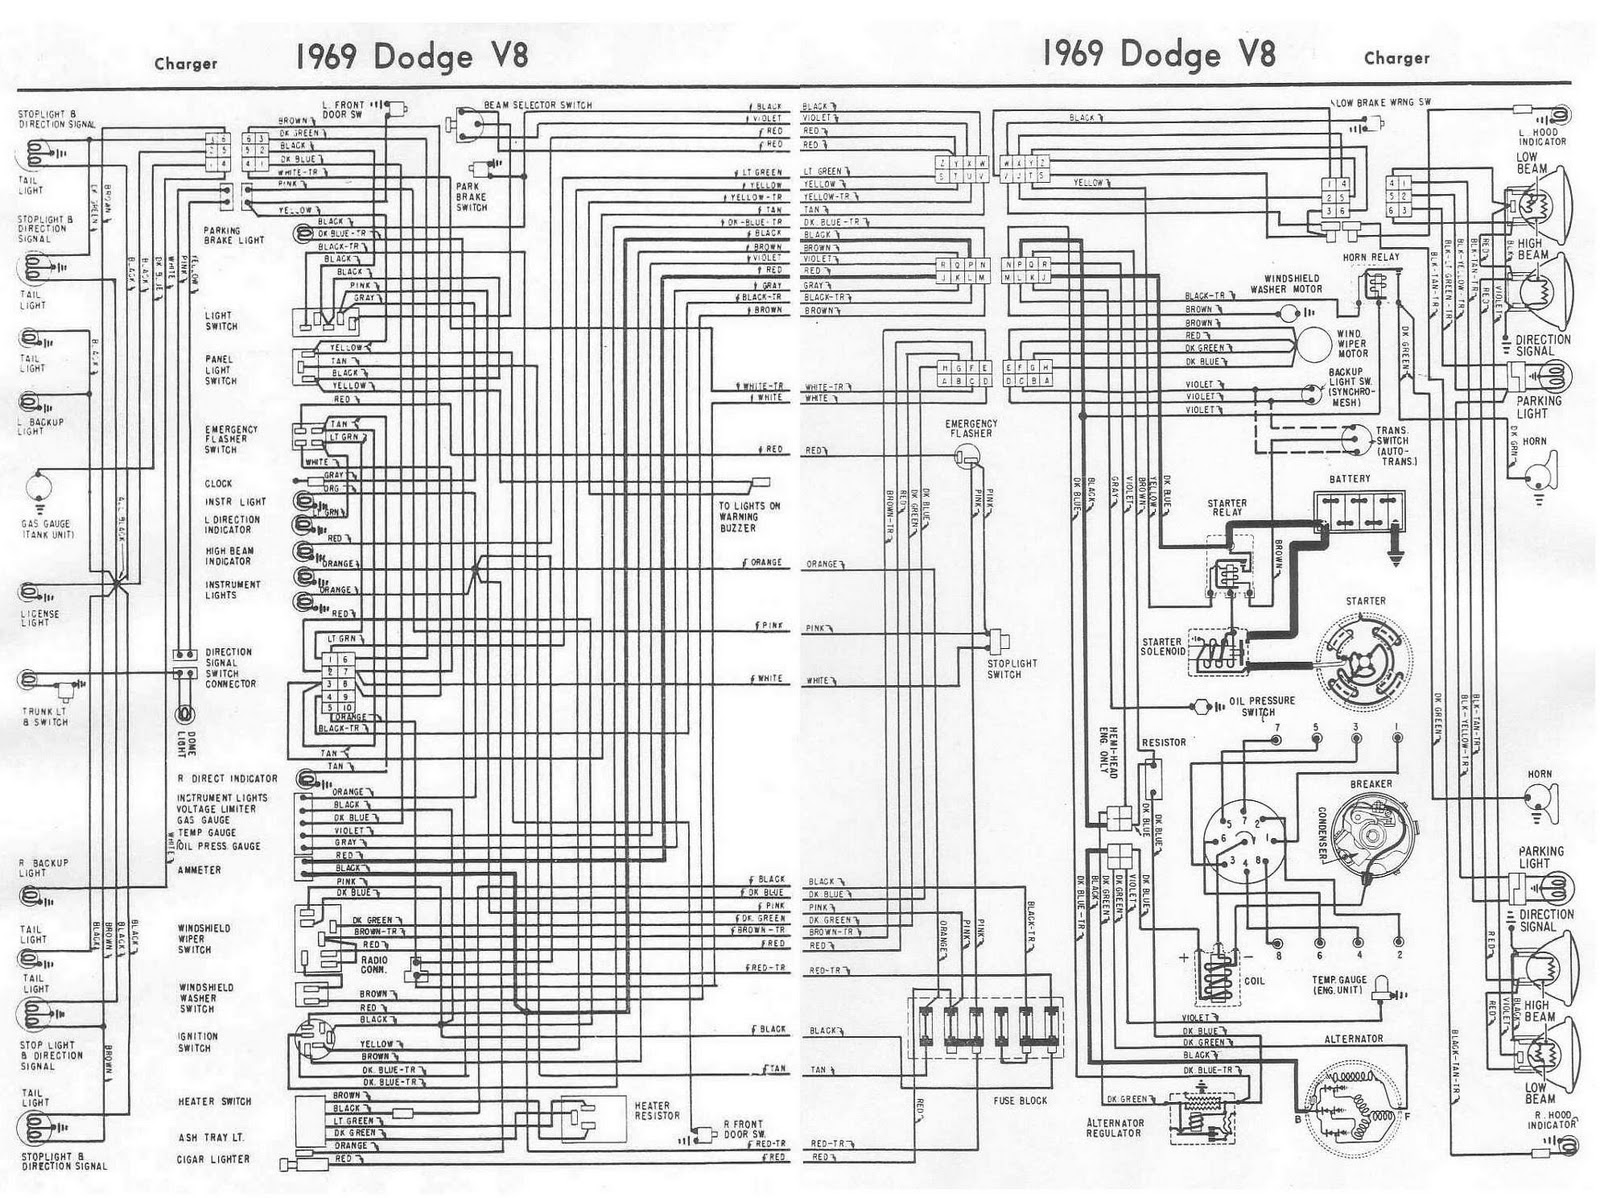 DIAGRAM] 1975 Dodge Wiring Diagram FULL Version HD Quality Wiring Diagram -  BUYDIAGRAMS.SARDEGNATTIVA.ITbuydiagrams.sardegnattiva.it